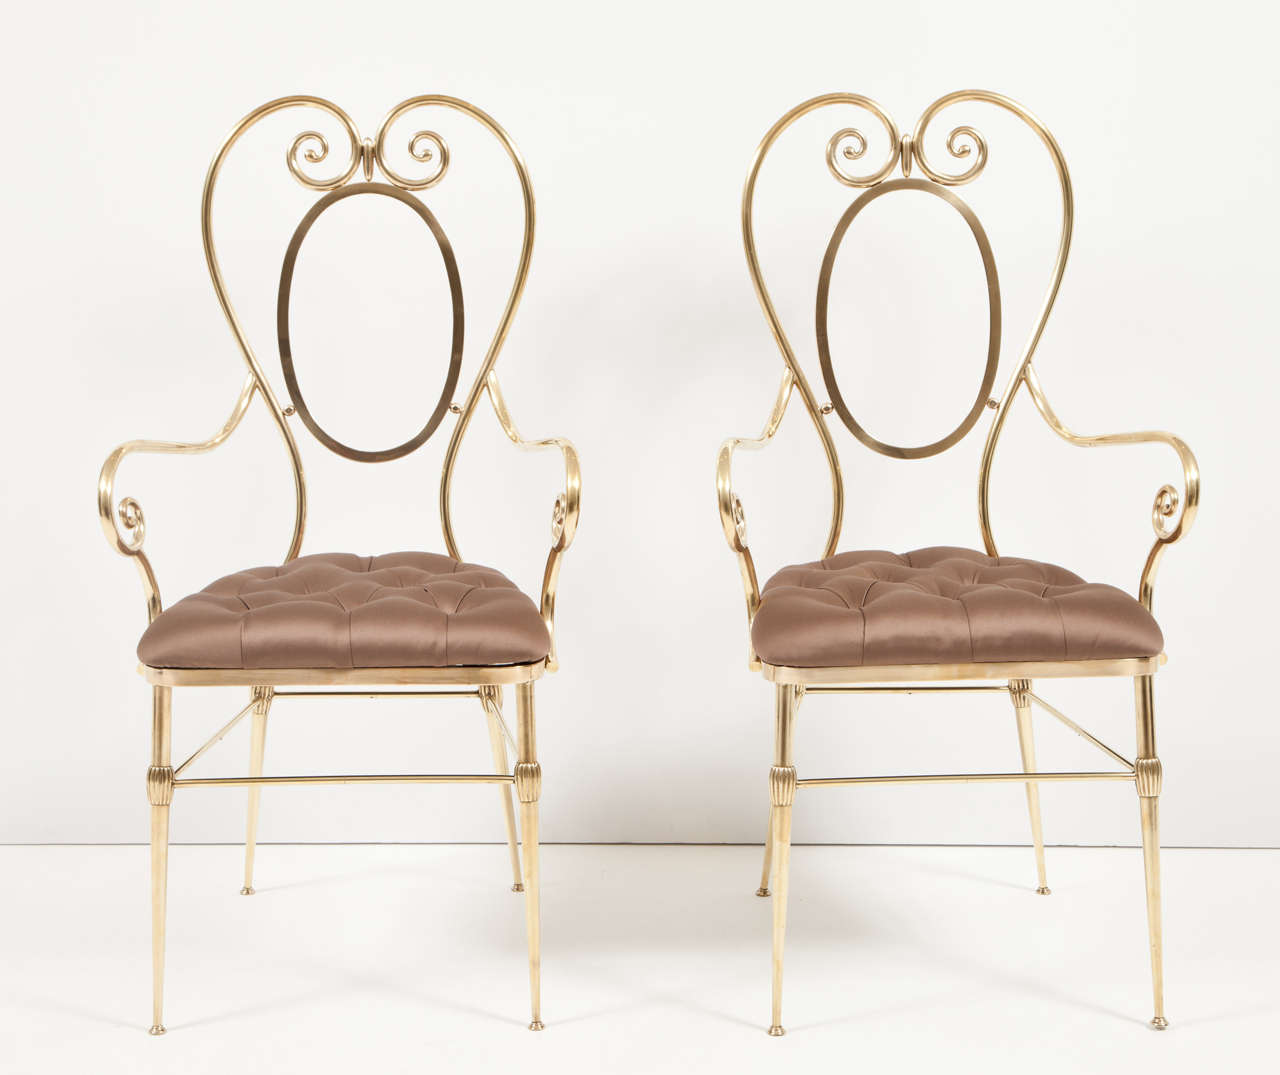 Decorative pair of brass side chairs, Italy, circa 1950. Upholstery in silk fabric, diamond tufting. Measures: Seat height is 18 inches.